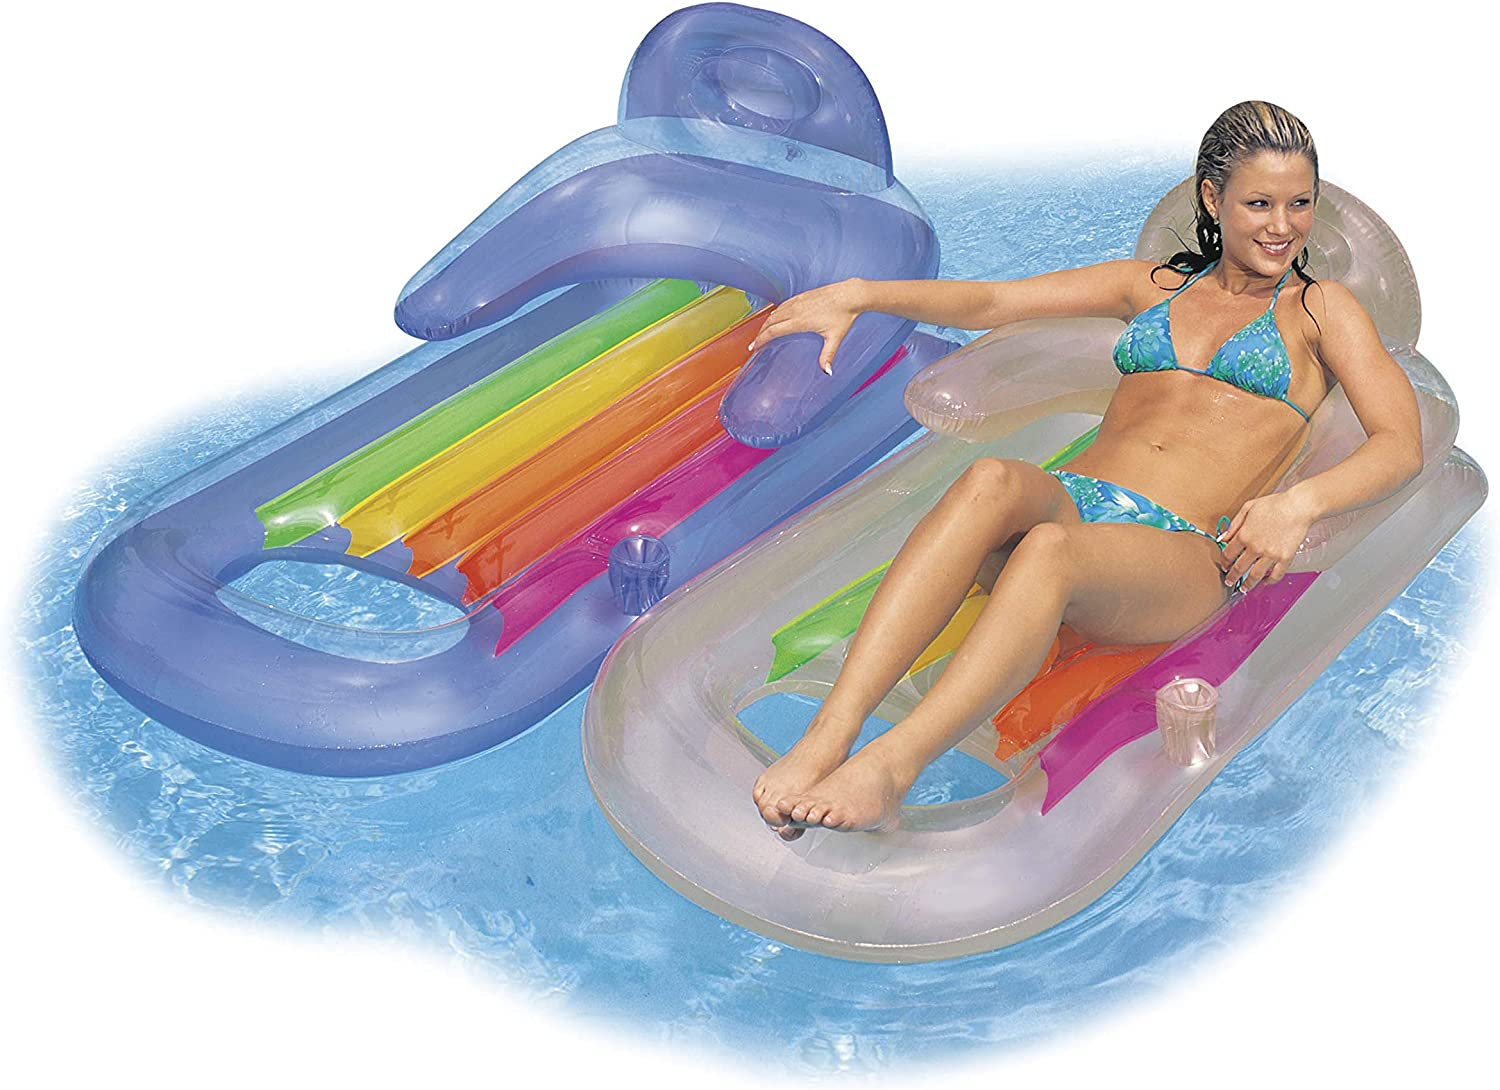 Intex King Kool Lounge Swimming Pool Lounger with Headrest - Set of 2 (Pair) : Toys & Games